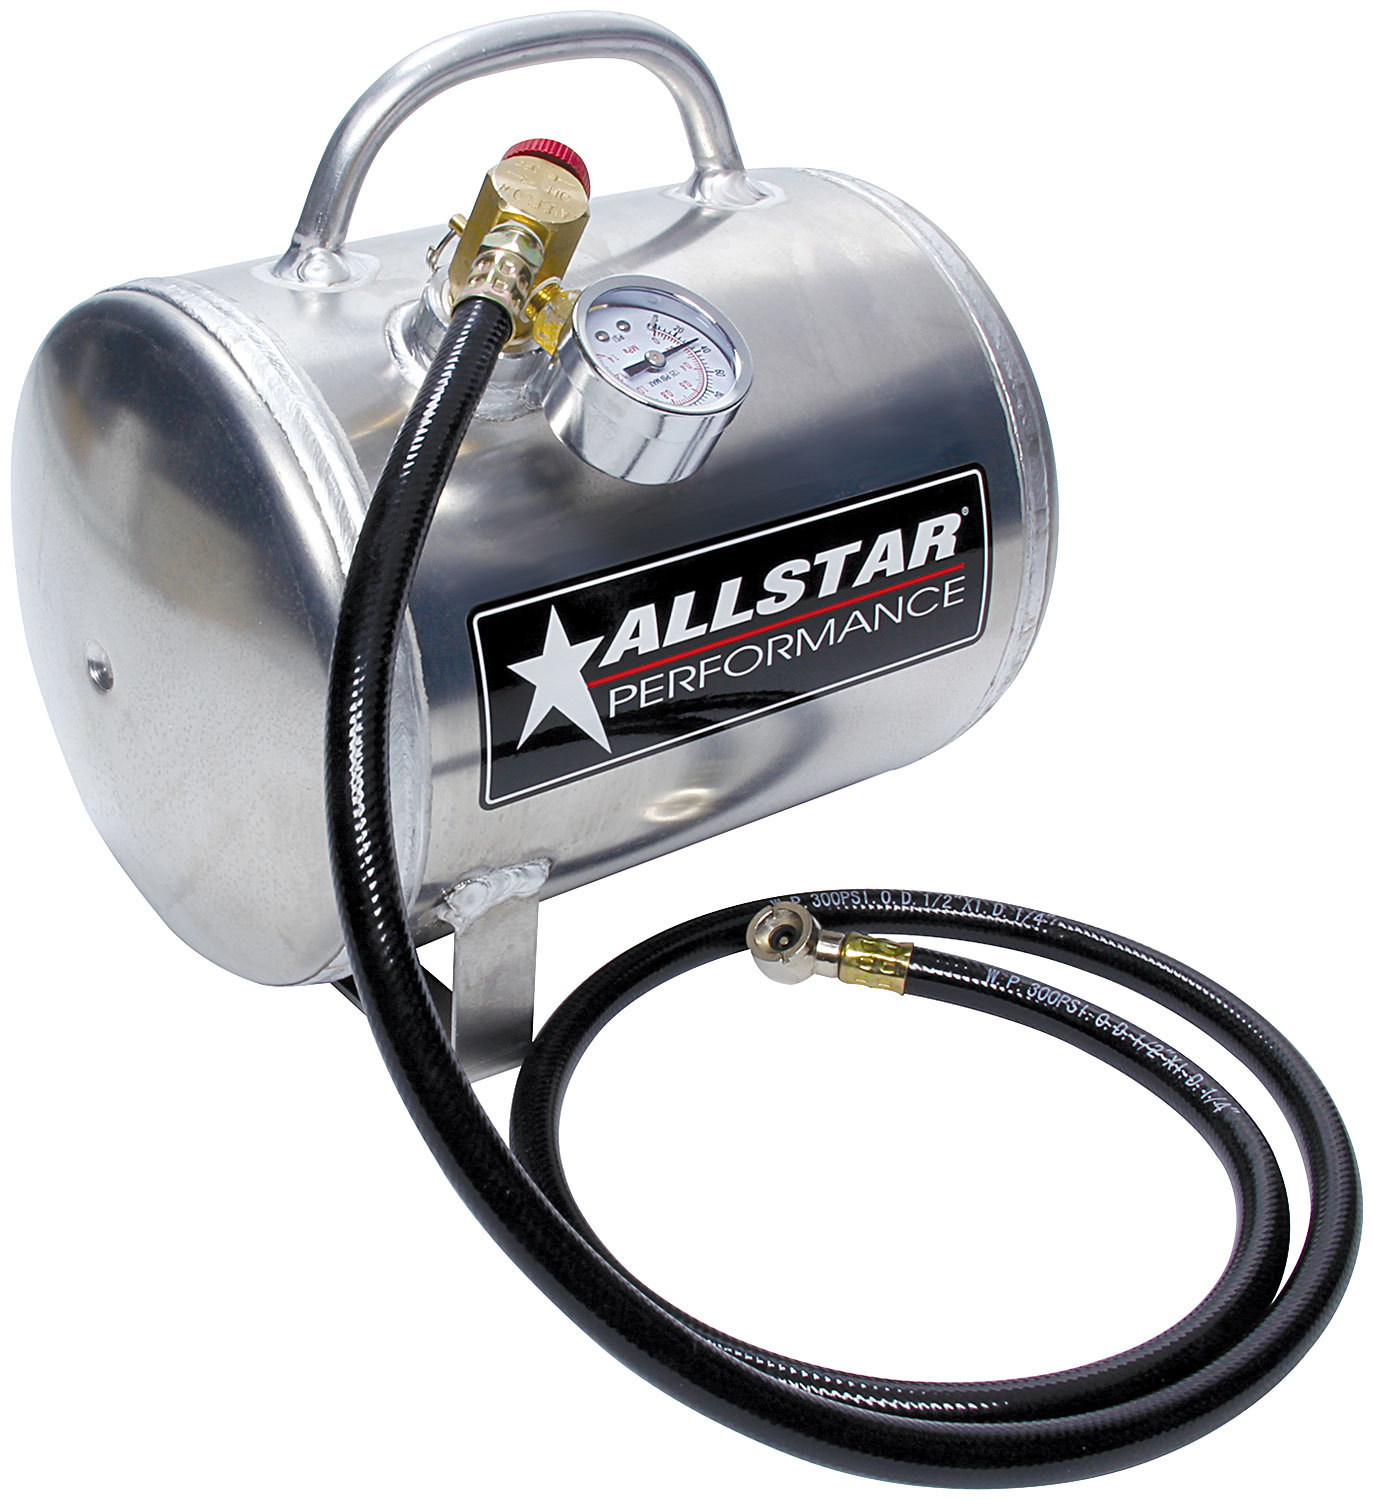 Corvette, Camaro, Track and Garage, Compressed Air Tank, Portable, 1-1/2 gal, Hose, Aluminum